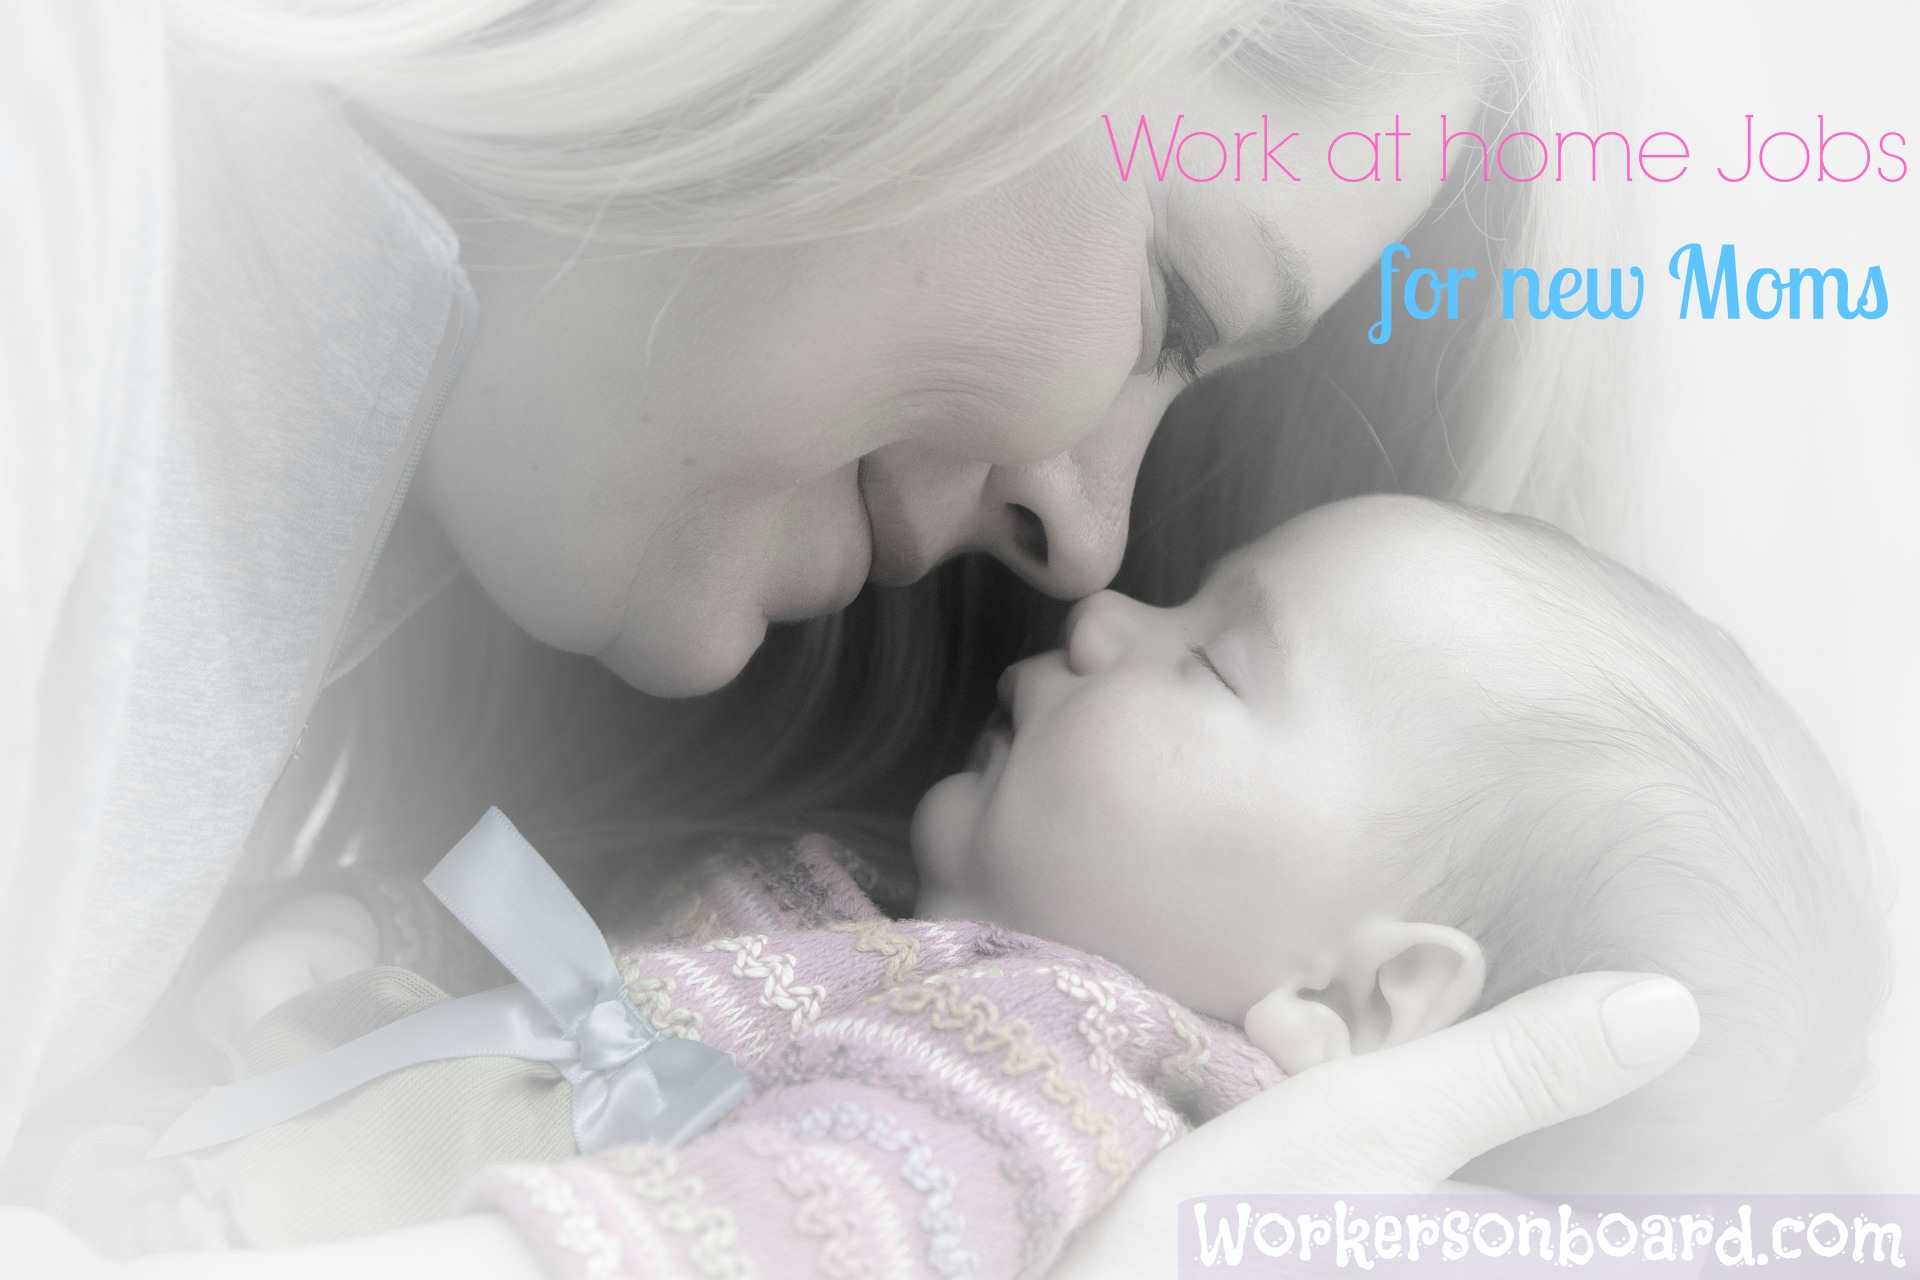 Work at home Jobs for New Moms Workersonboard